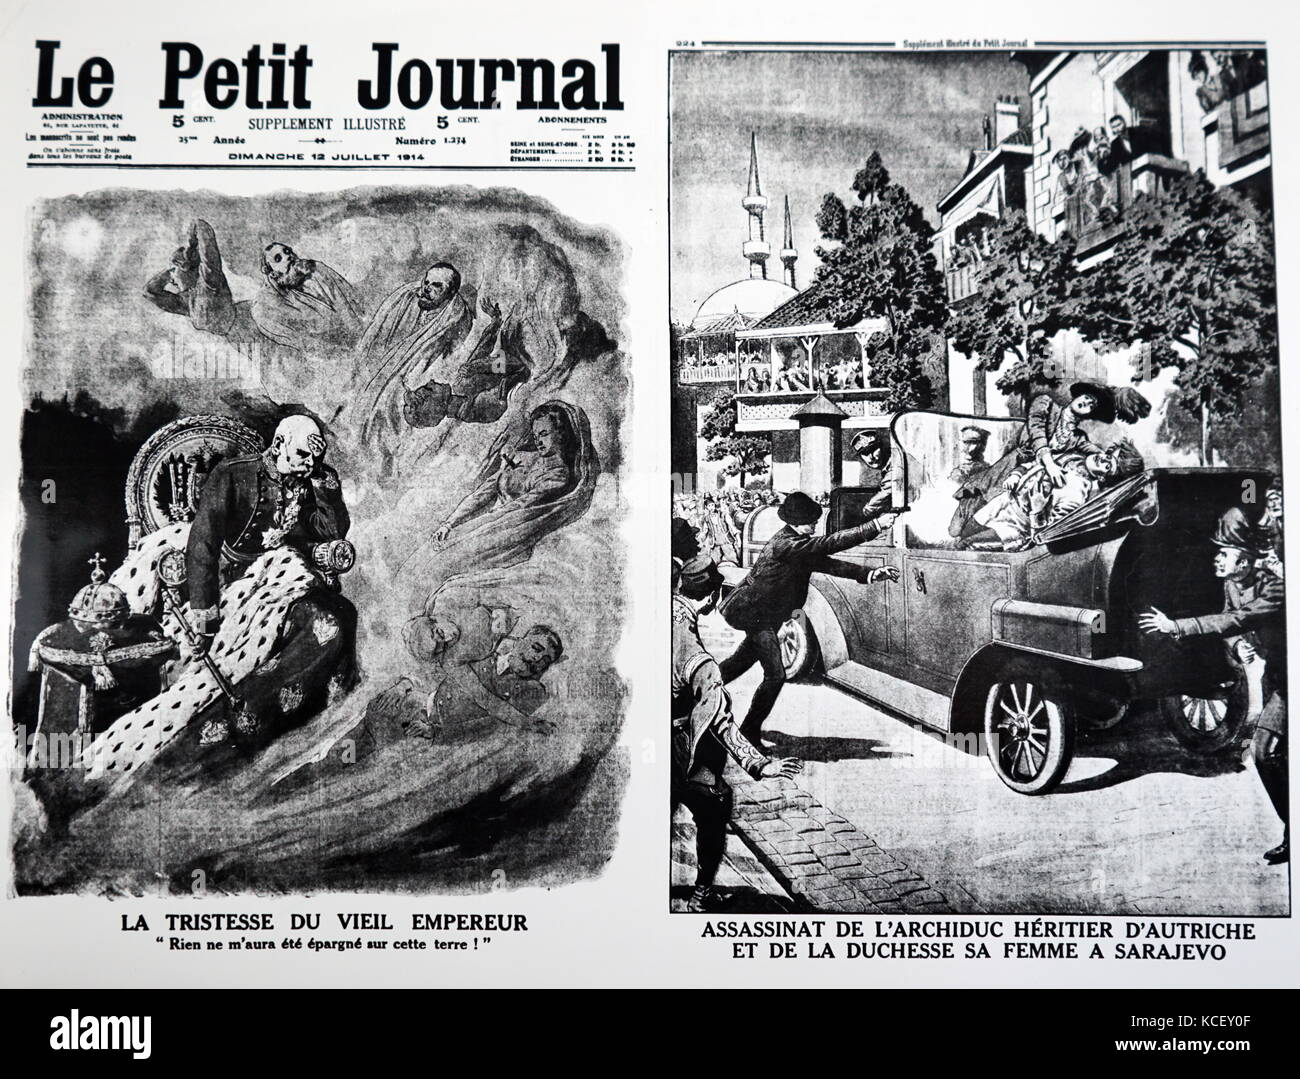 Two cartoons depict the grief of Franz Josef of Austria and the assassination of his nephew Franz Ferdinand, Archduke - Stock Image